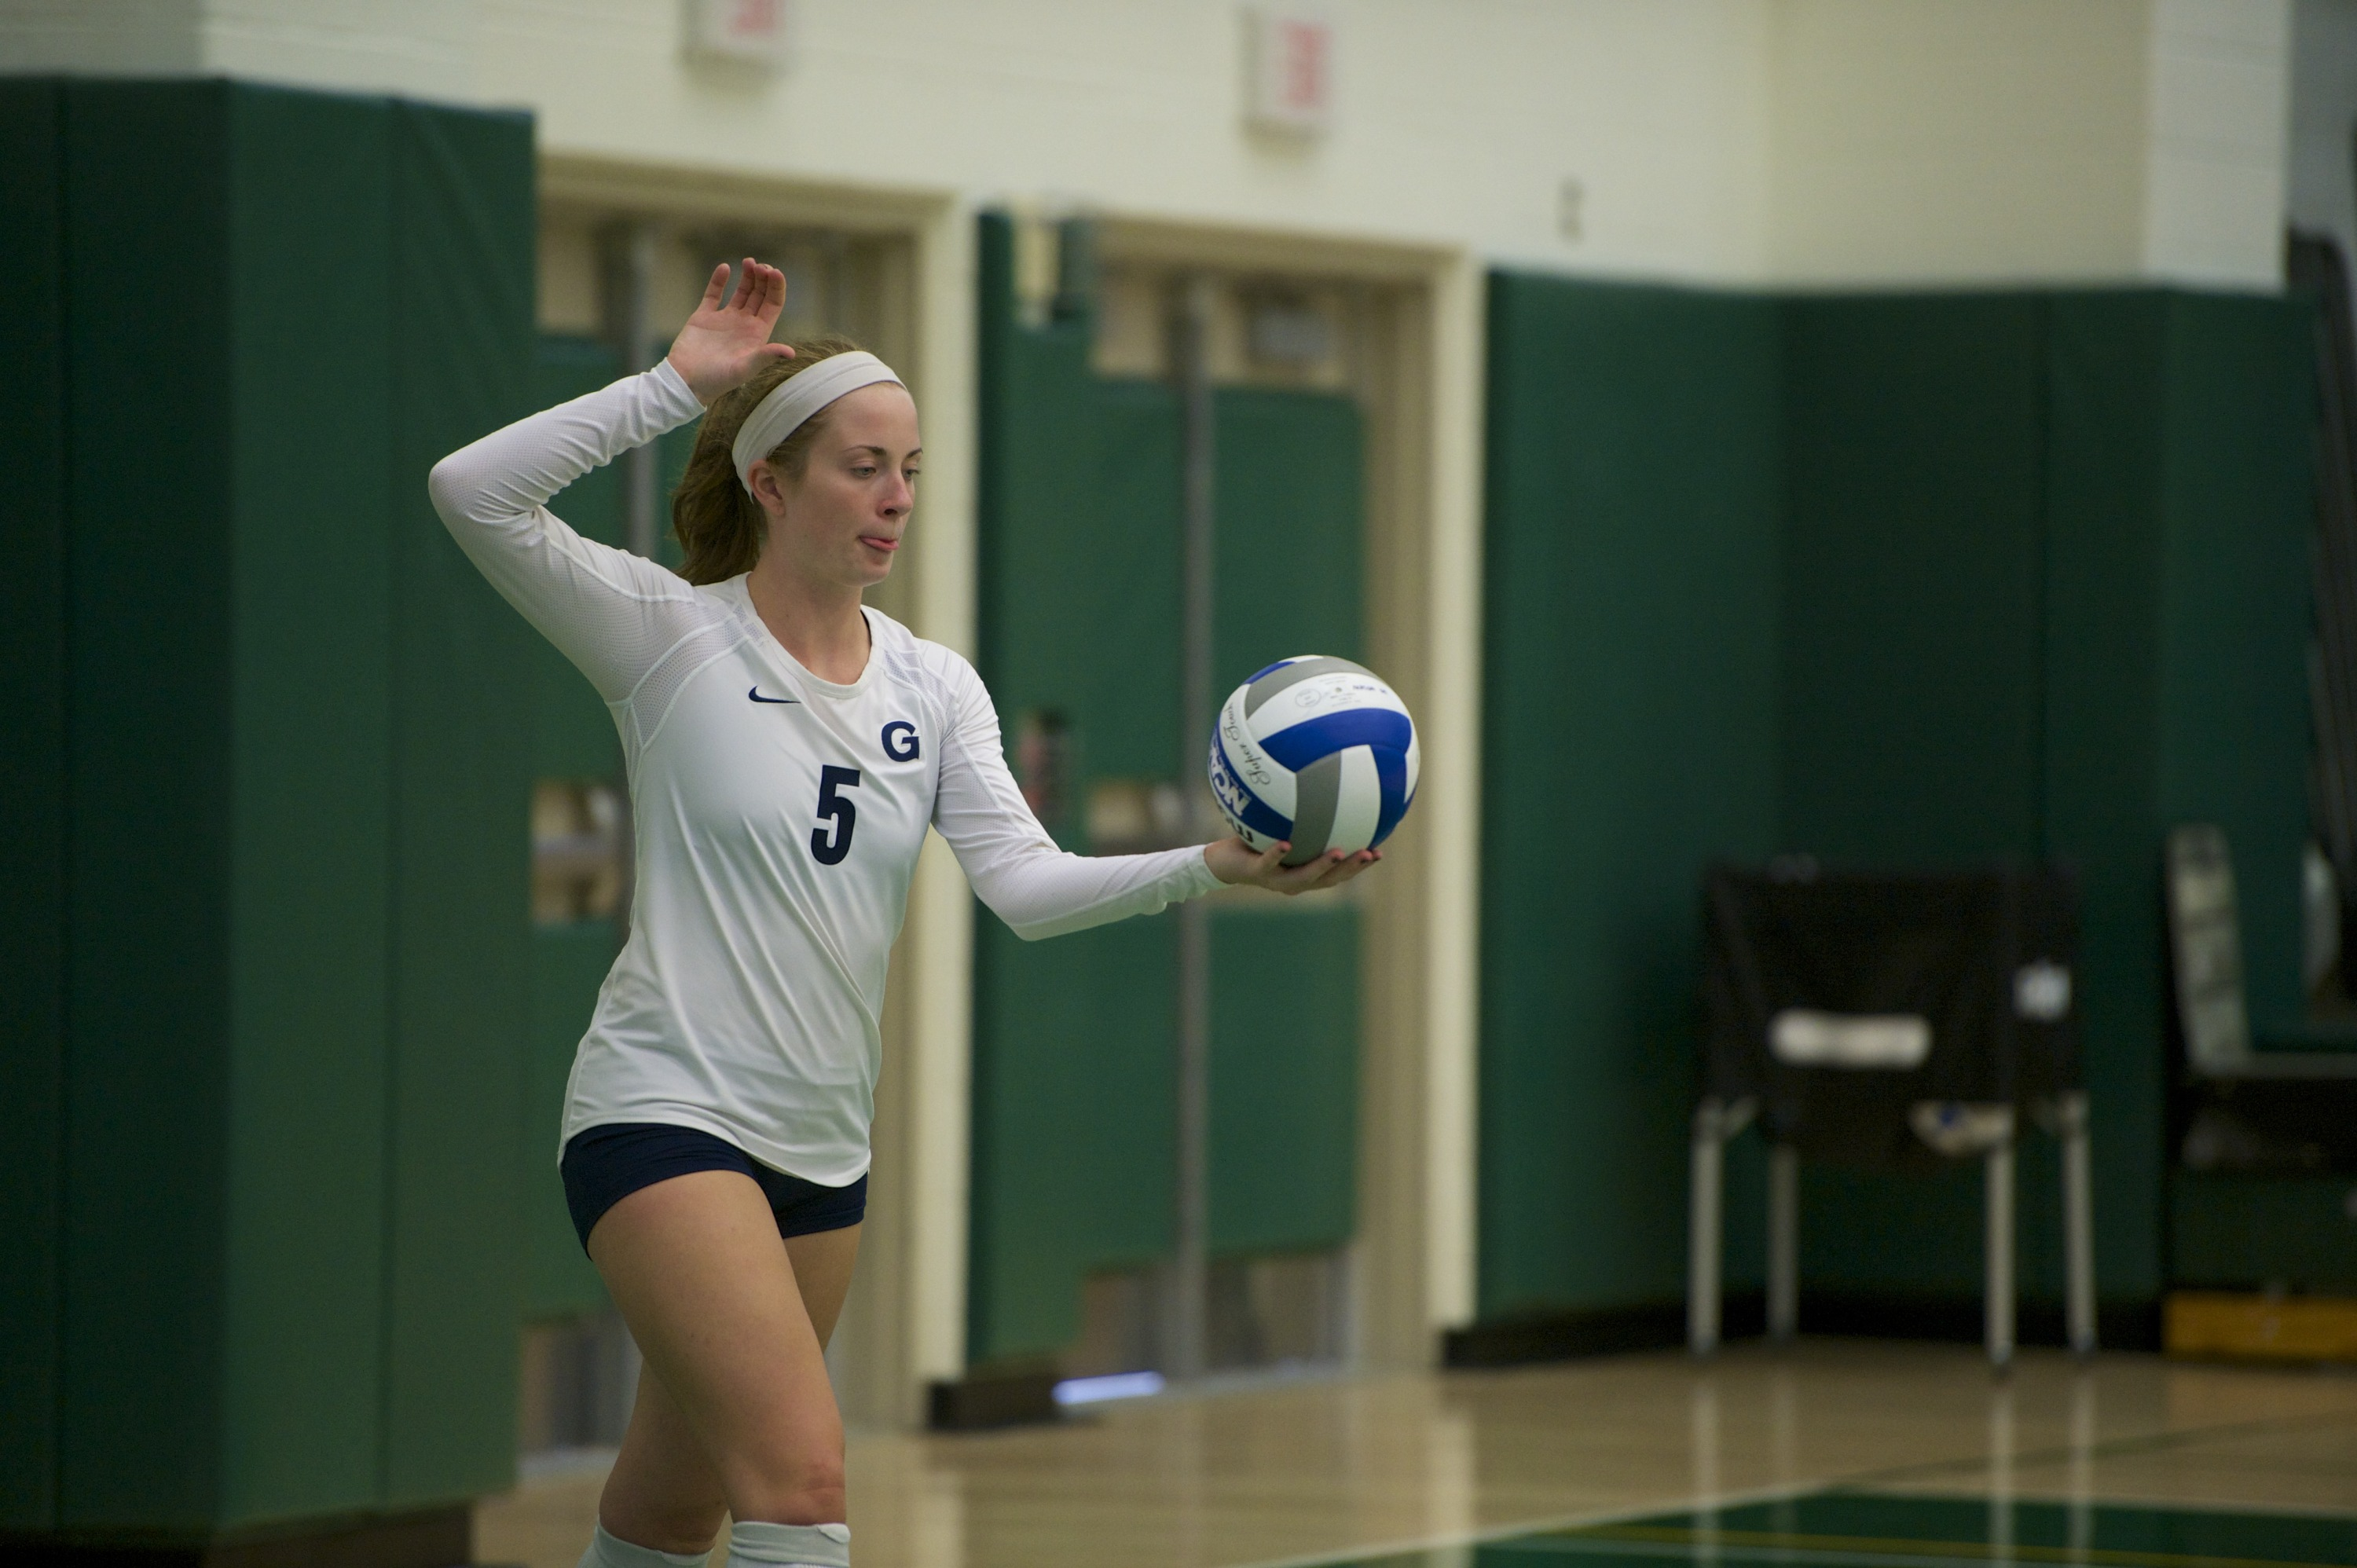 Casey Speer finished with 41 assists on Friday, an average of 13.67 assists per set.